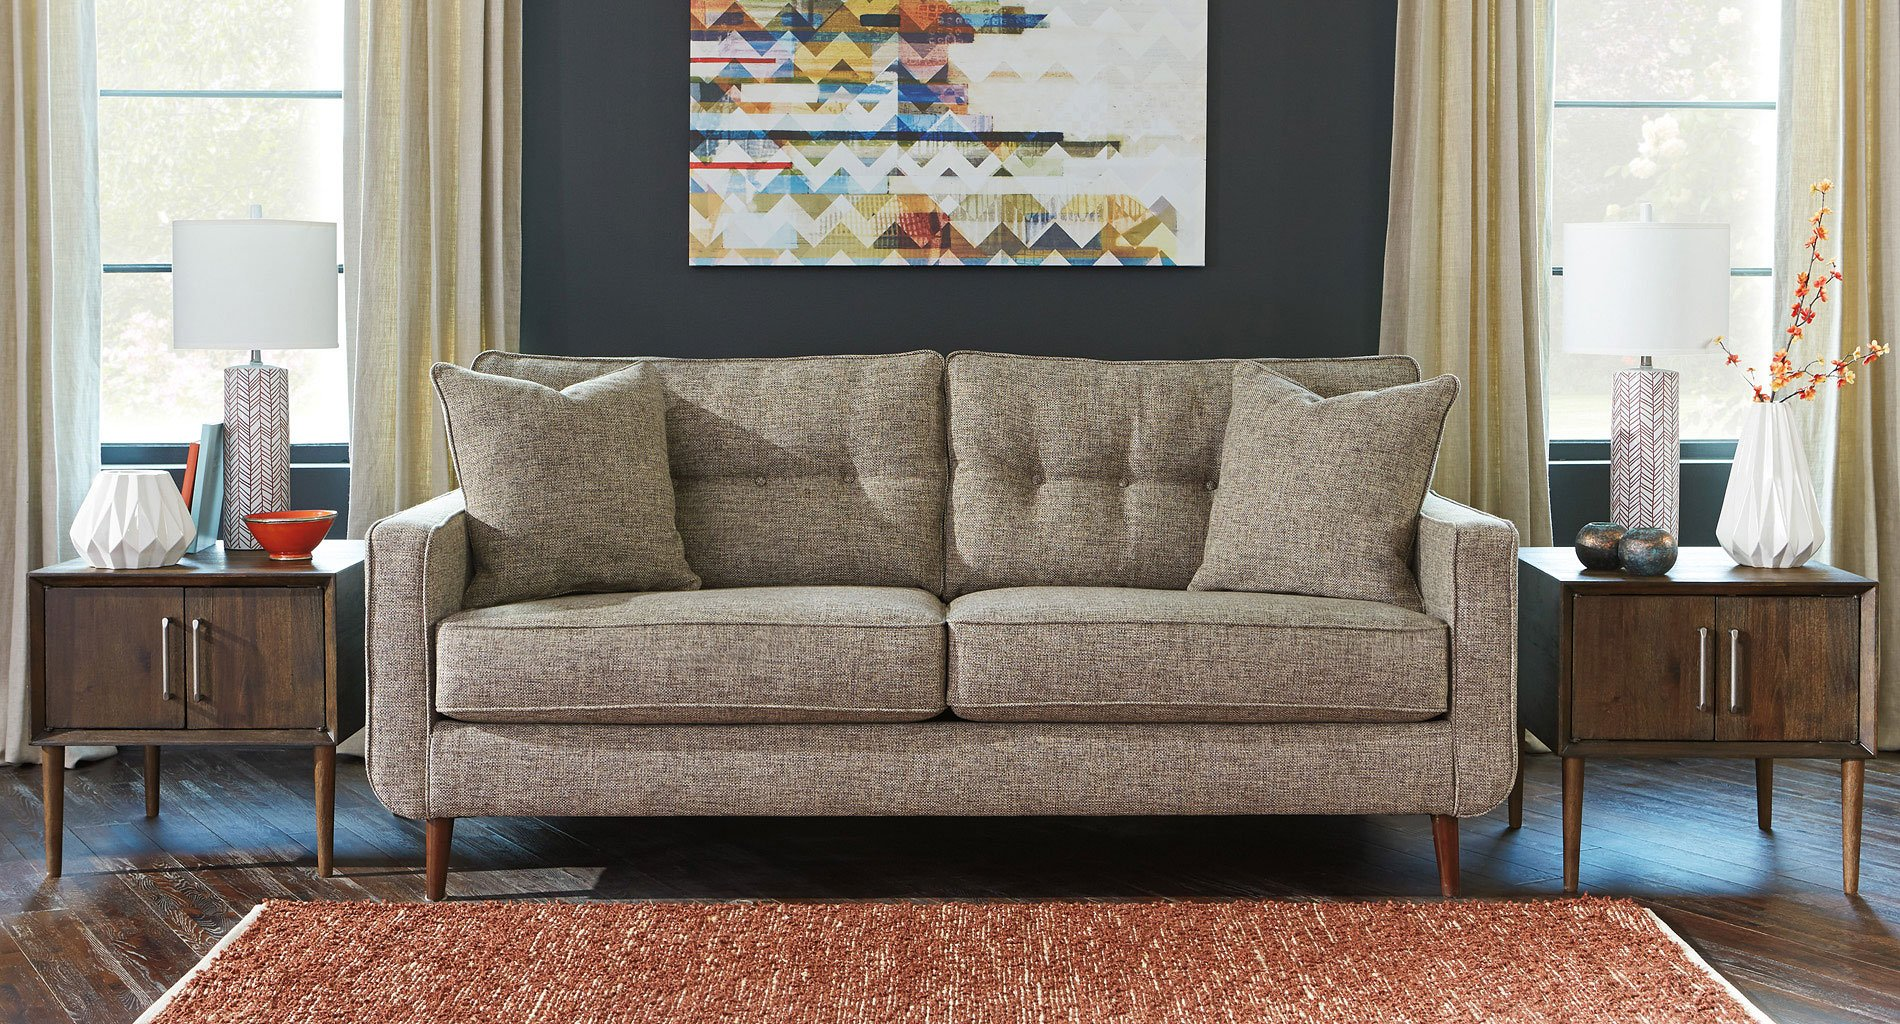 Chento Jute Sofa By Benchcraft 1 Review S Furniturepick